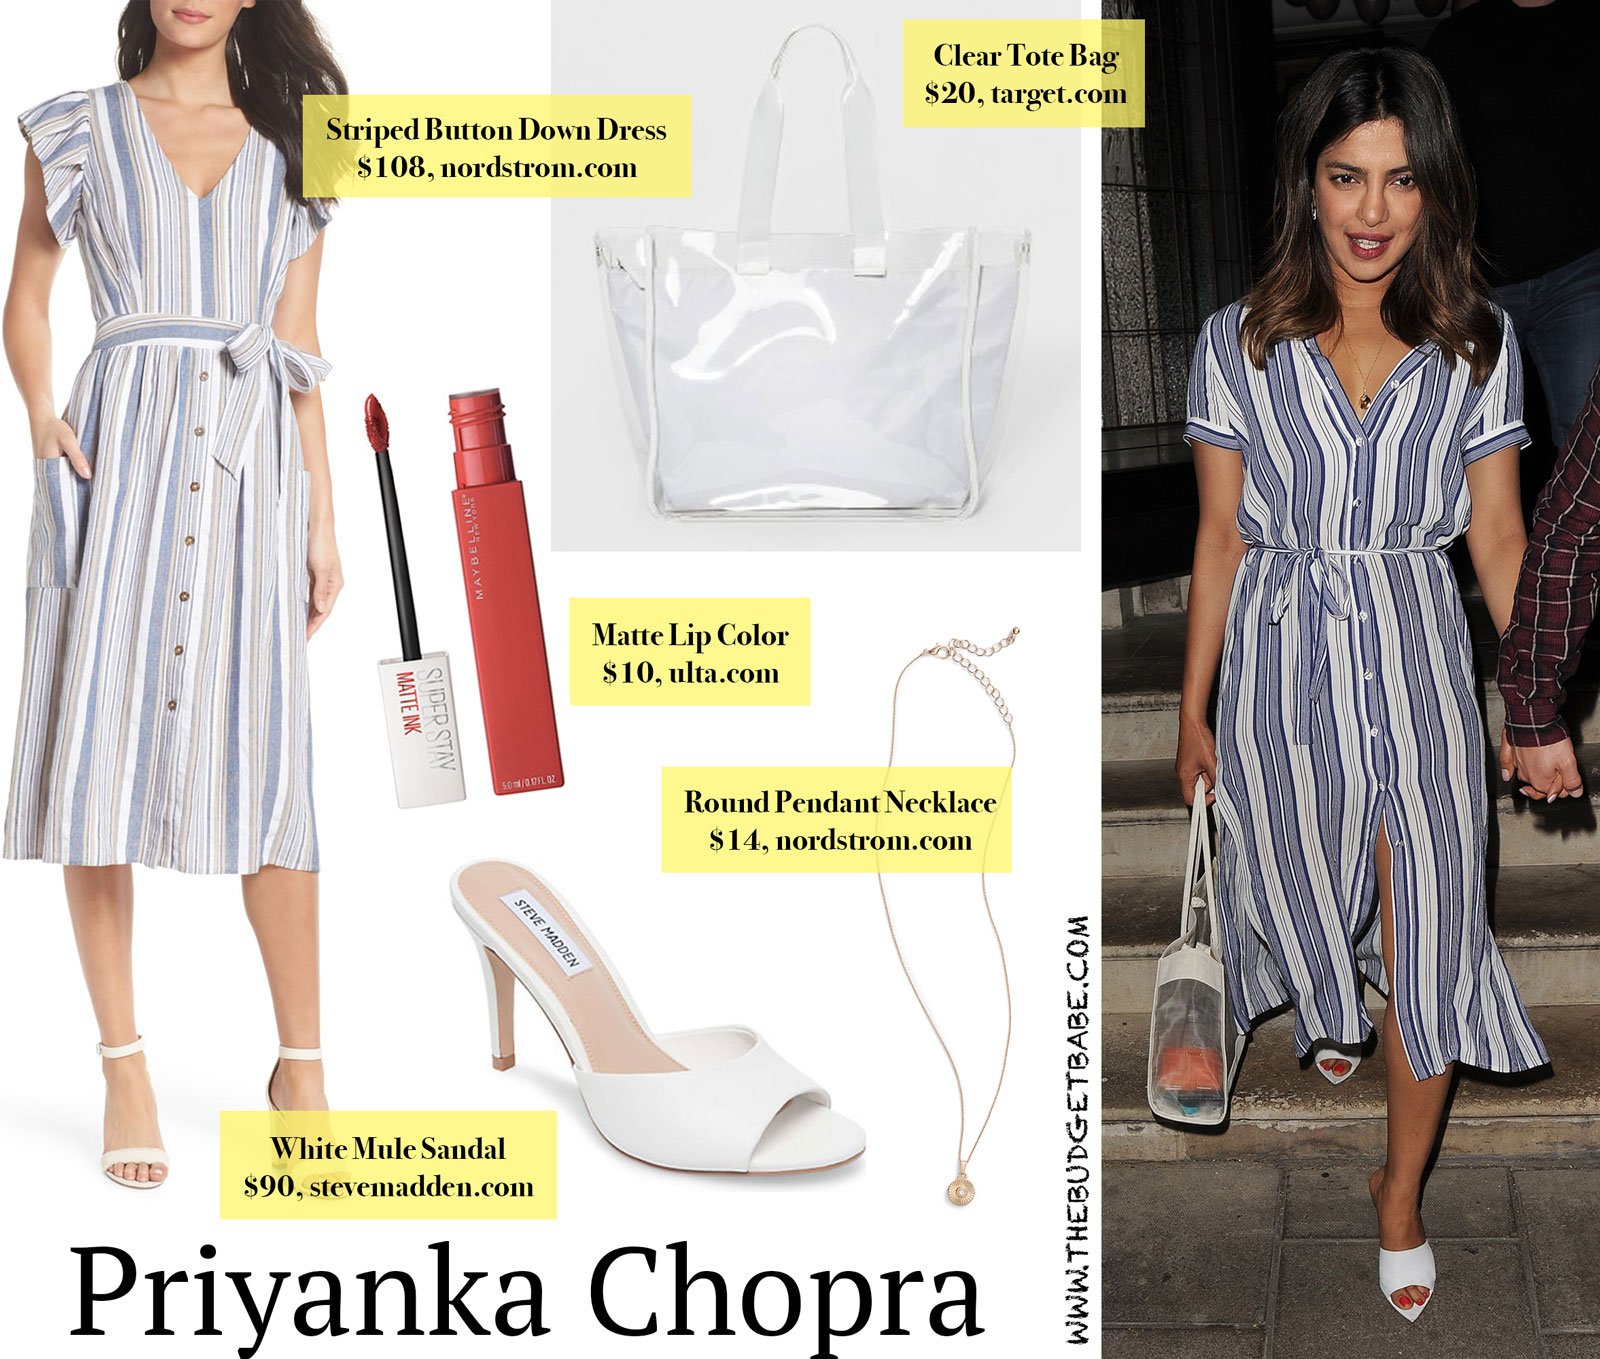 Priyanka Chopra Blue Striped Dress and White Mules Look for Less